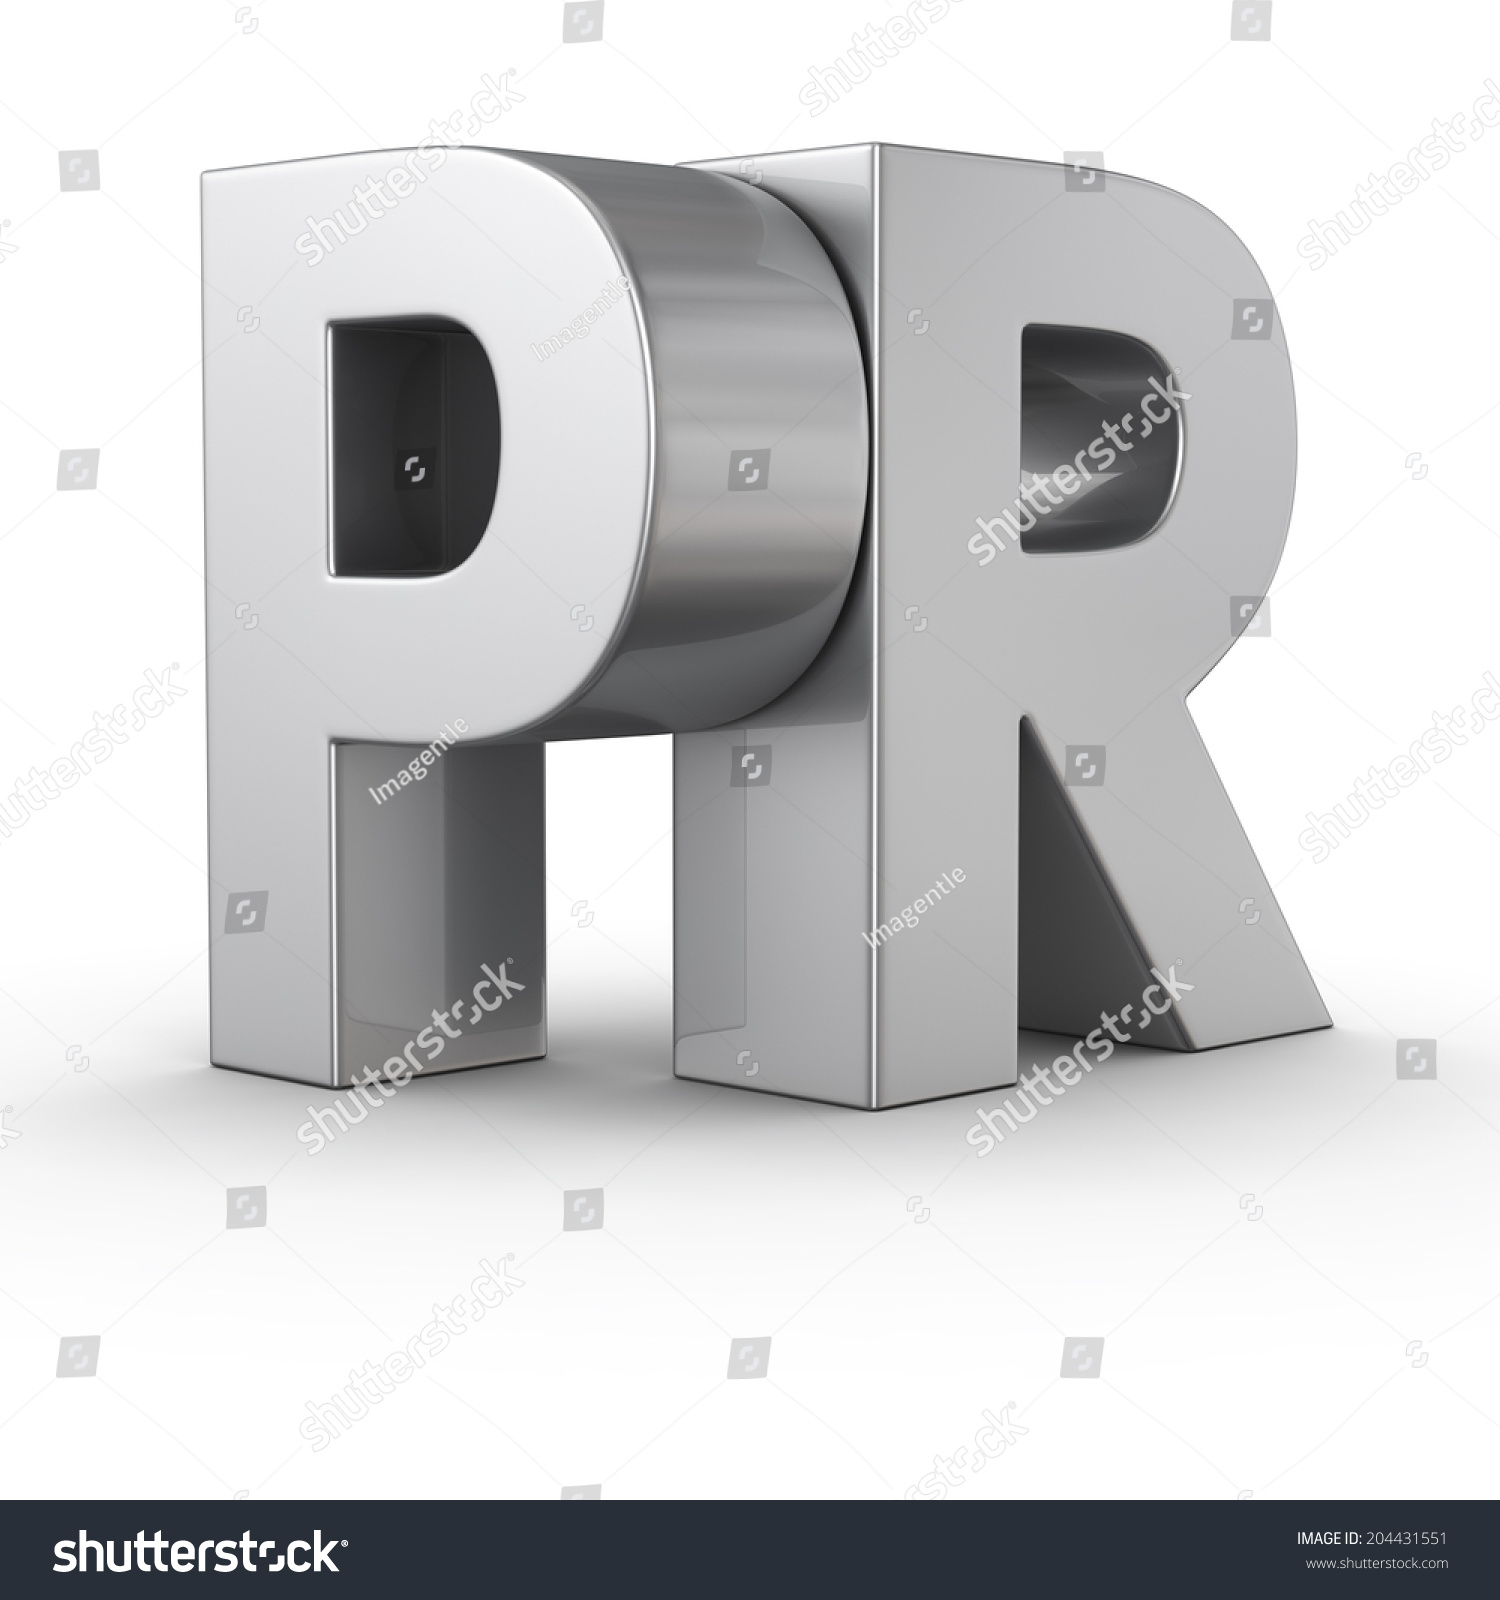 Big Metal Letters Pr On White Background Stock Photo 204431551 ...